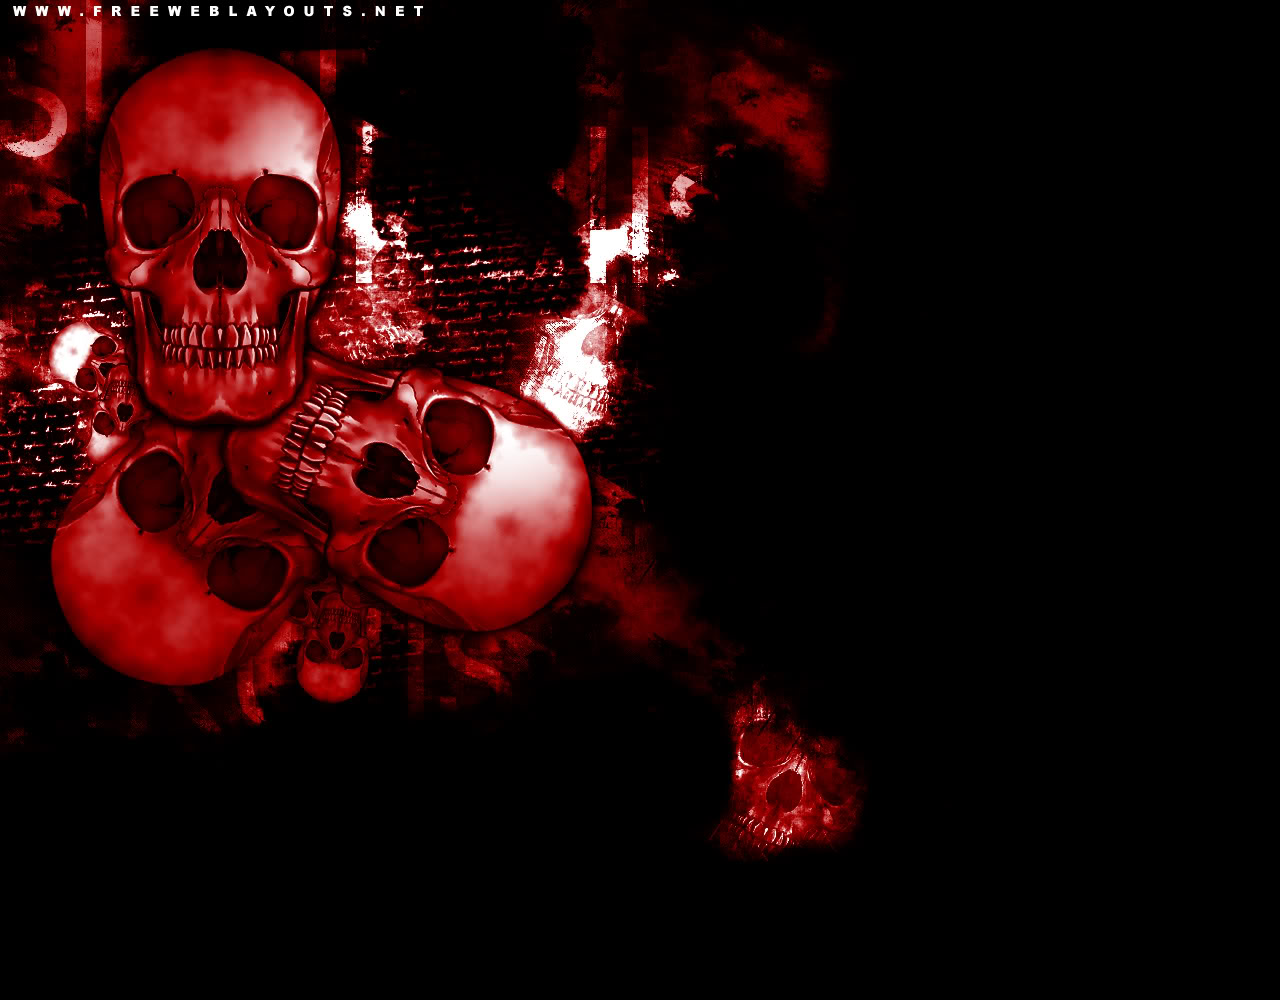 Images of Wallpaper Tags Red Skull - #SC